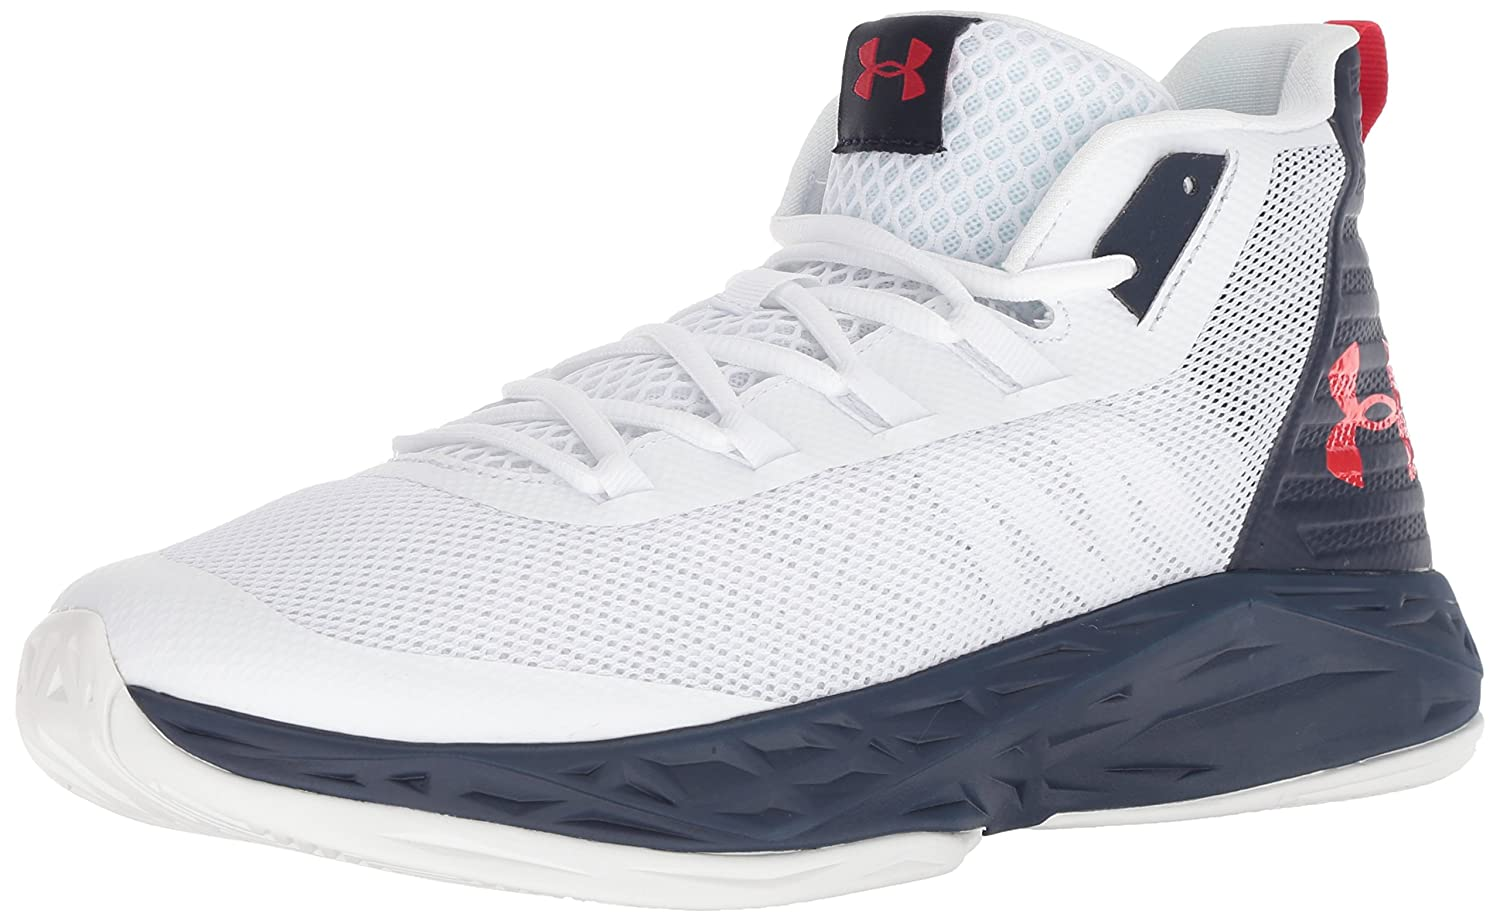 Under Armour Chaussures UA Jet Mid, Chaussures Armour de Basketball Homme 46 EU|Blanc (White/Midnight Navy/Red) abb8b7